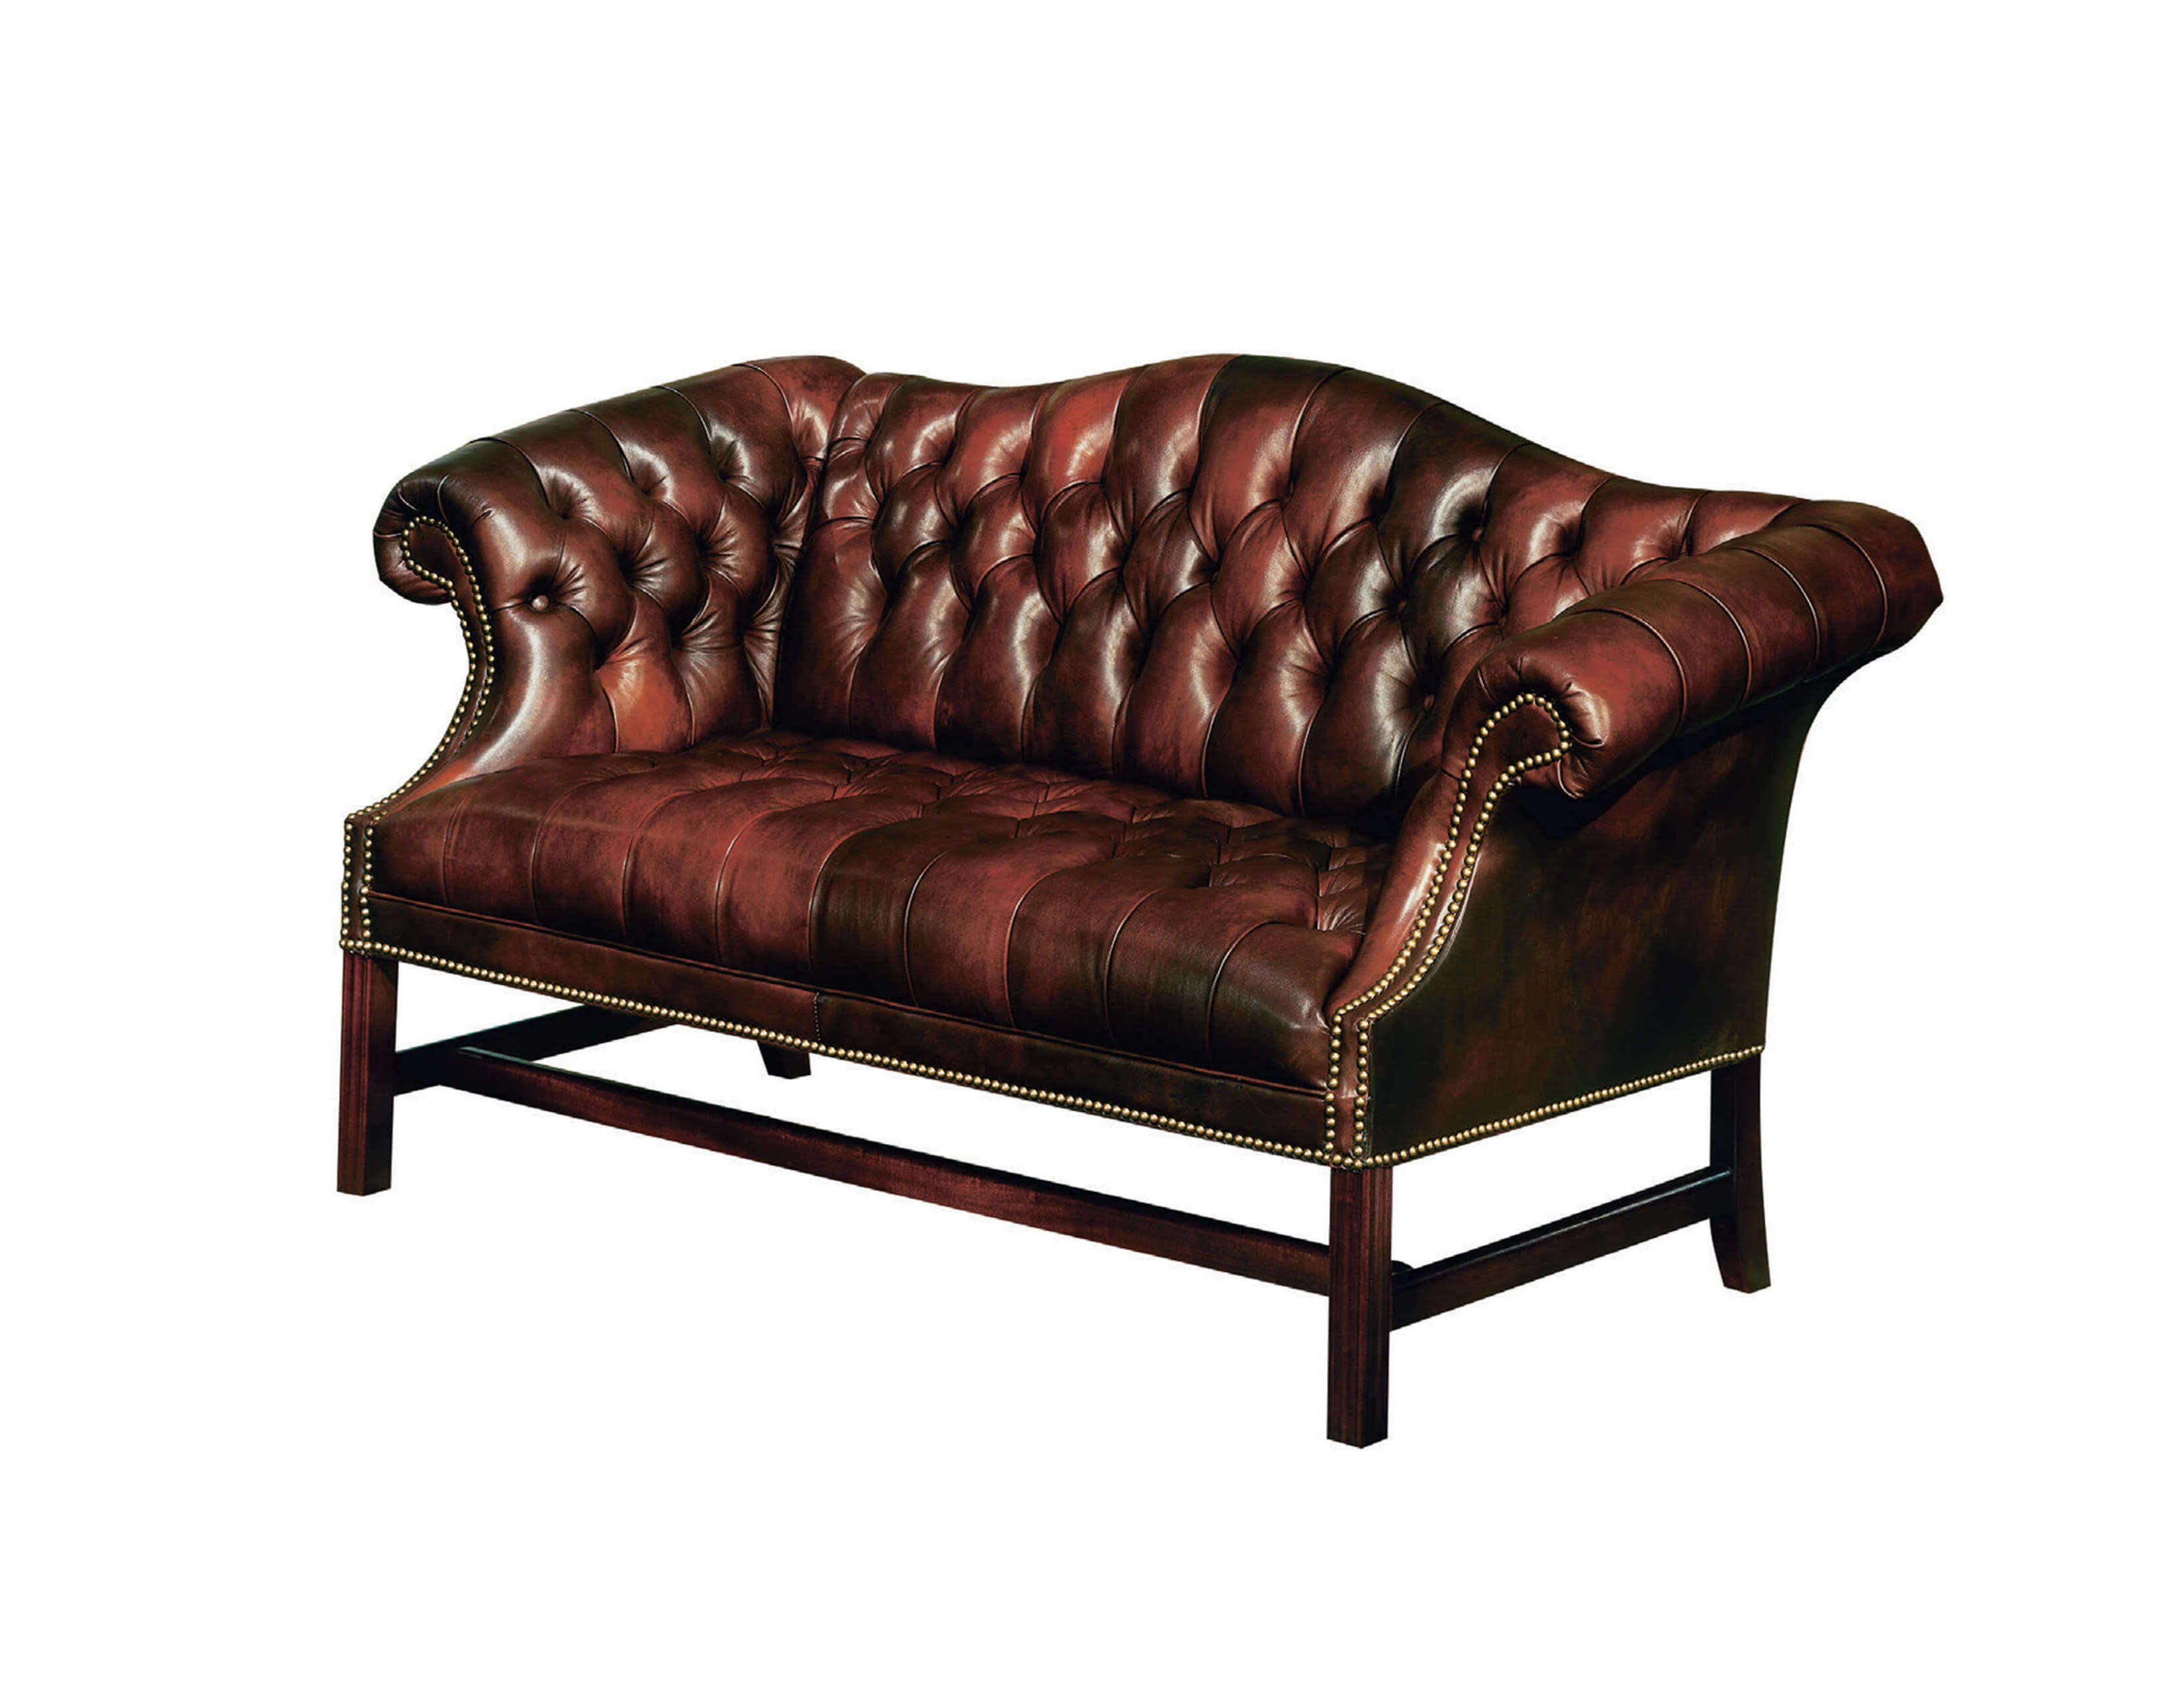 Classic Leather | Tufted Chippendale